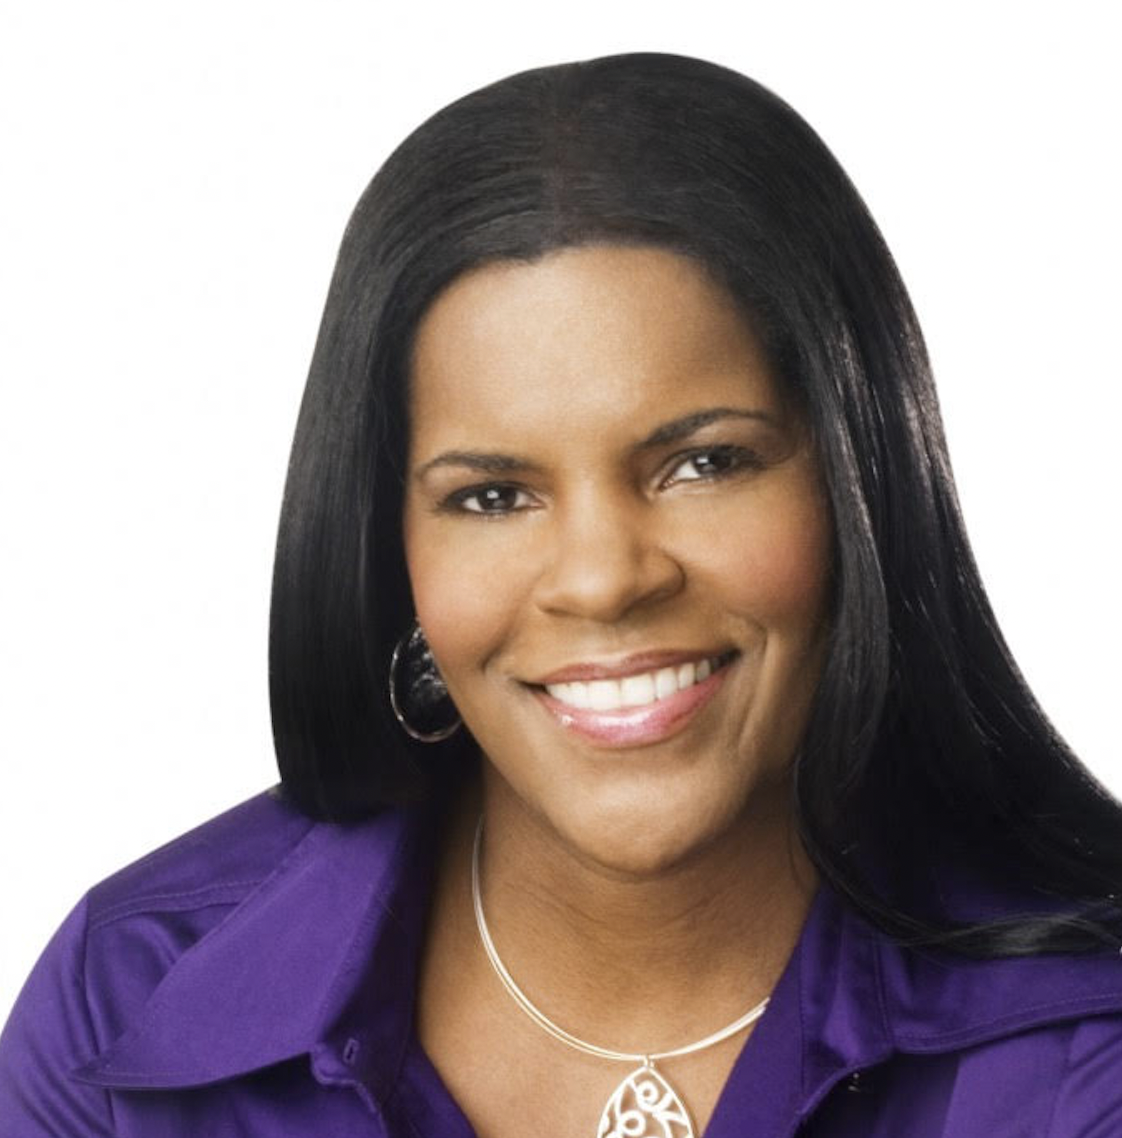 Lynnette Khalfani-Cox, The Money Coach: Understanding Your Credit and Financial Health To Achieve Your Goals